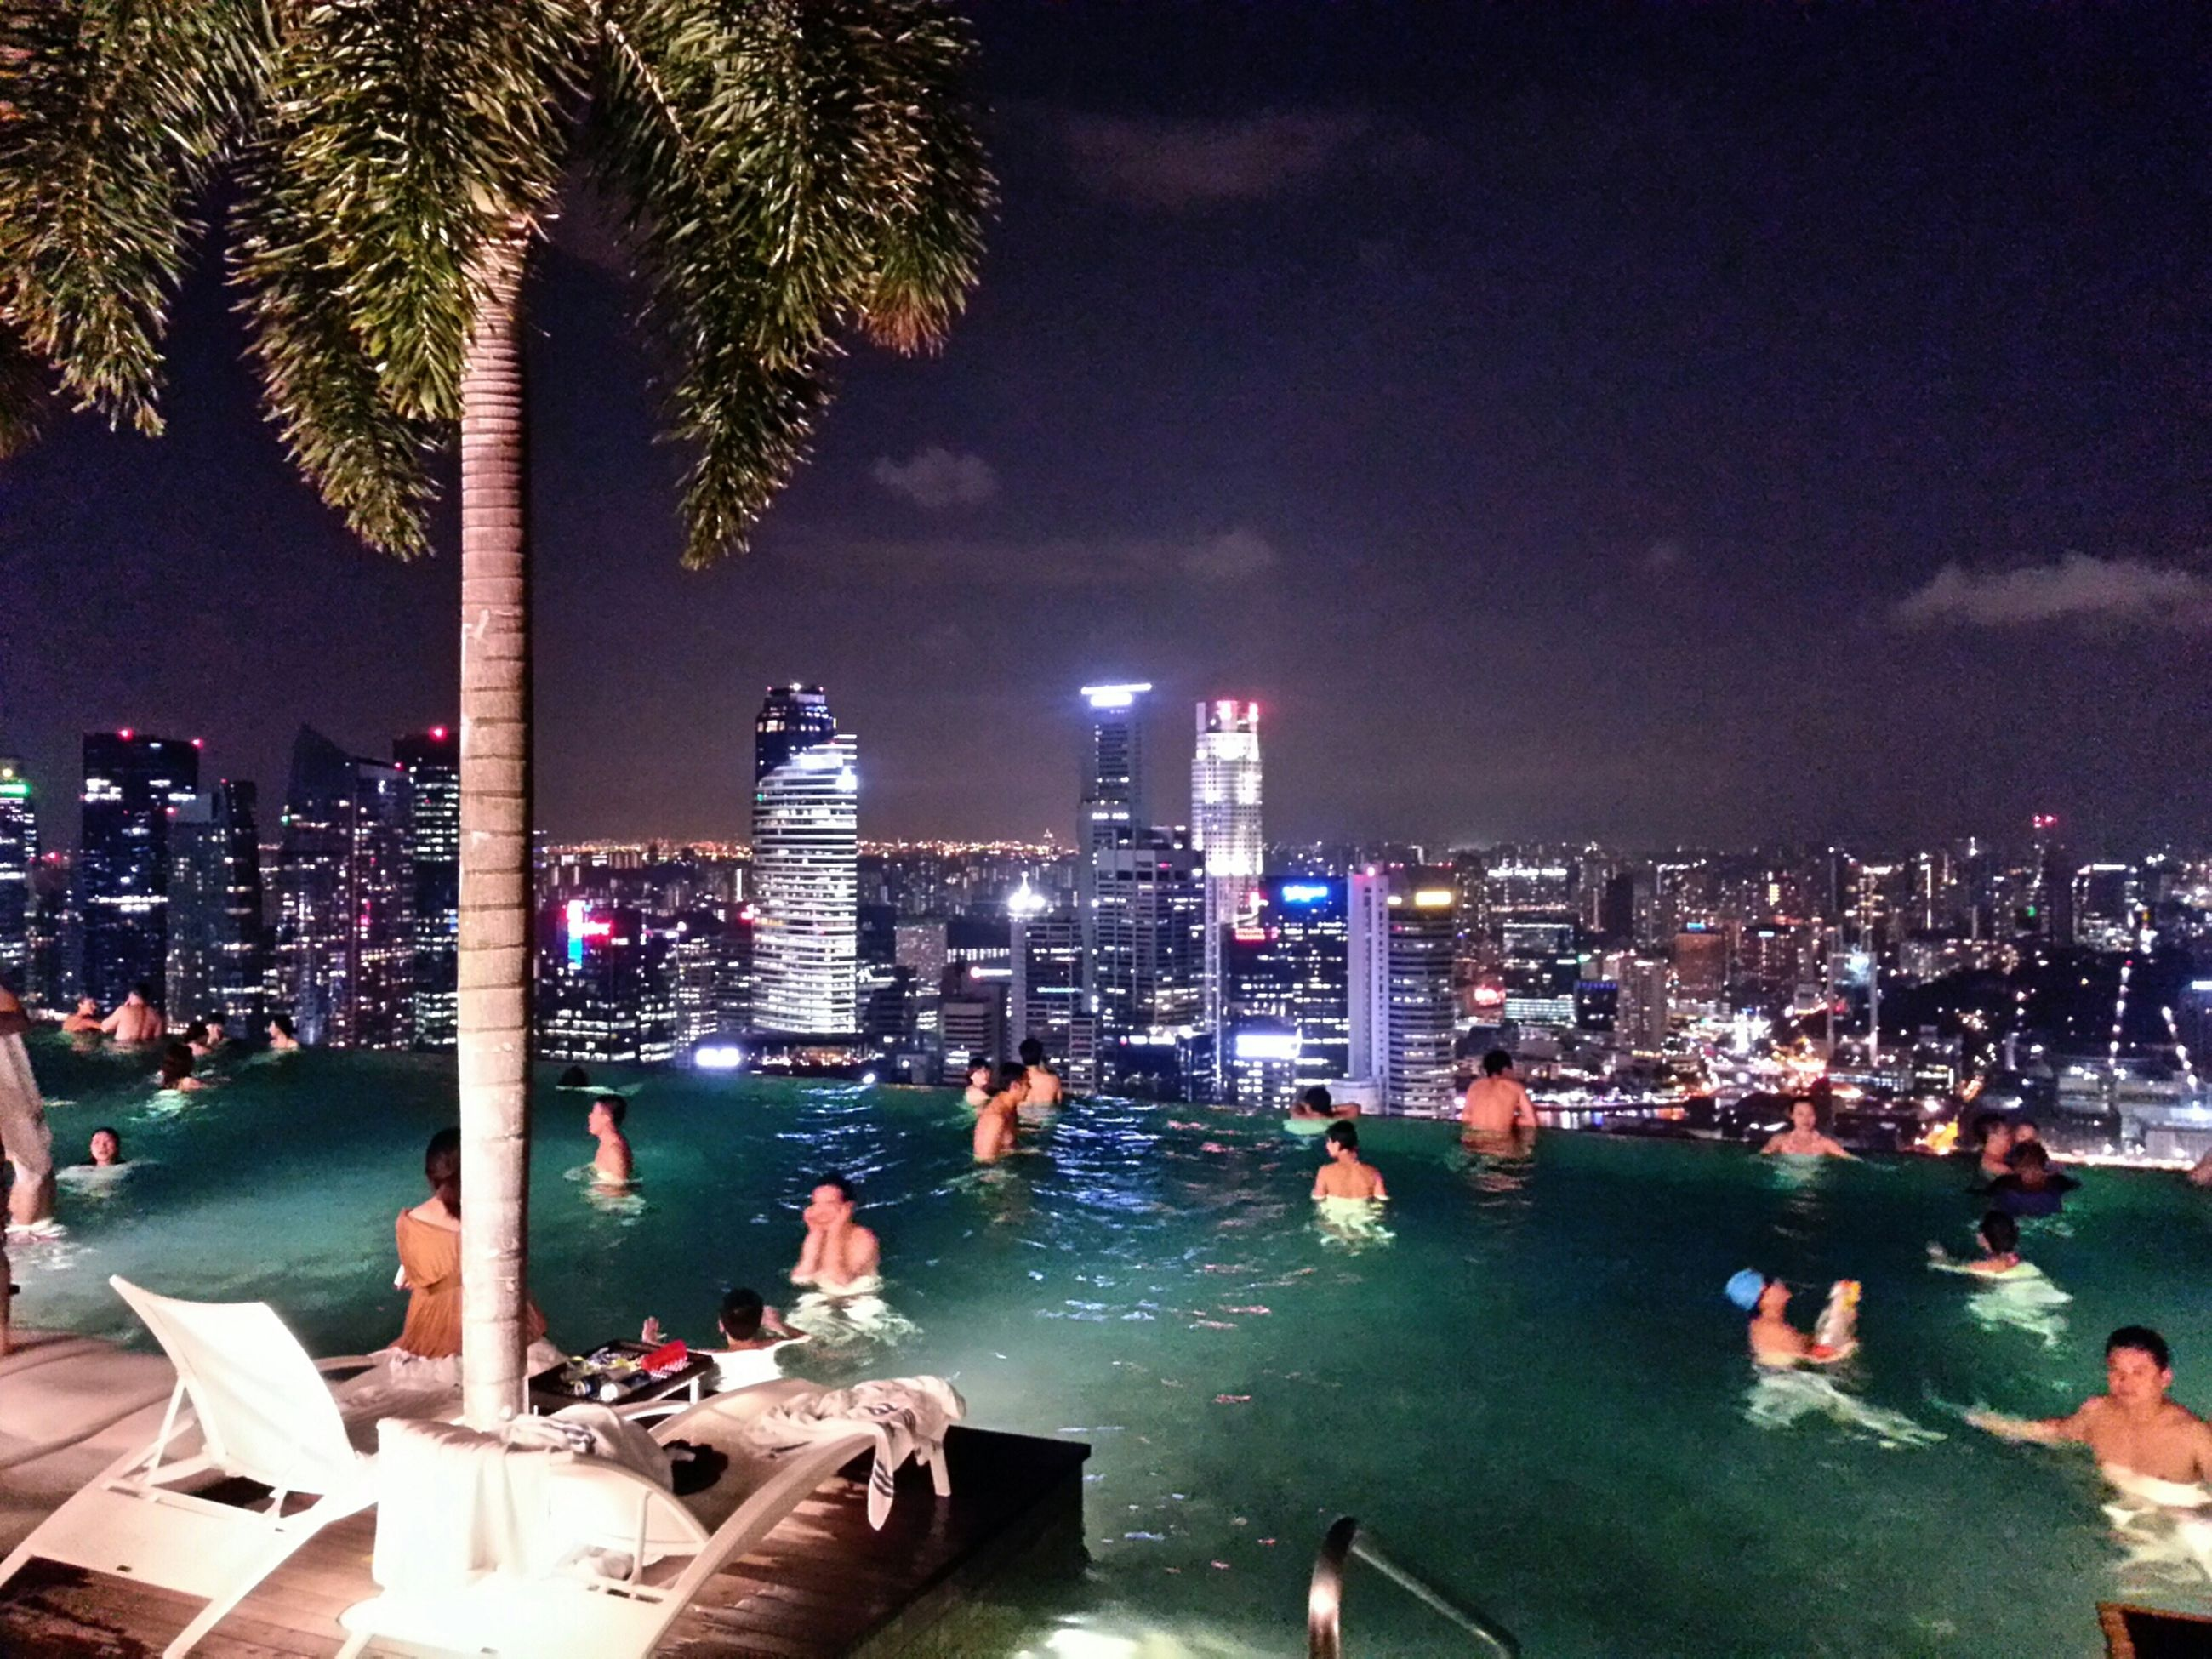 city, building exterior, illuminated, cityscape, architecture, skyscraper, built structure, night, water, sky, tall - high, modern, tower, city life, urban skyline, leisure activity, office building, financial district, lifestyles